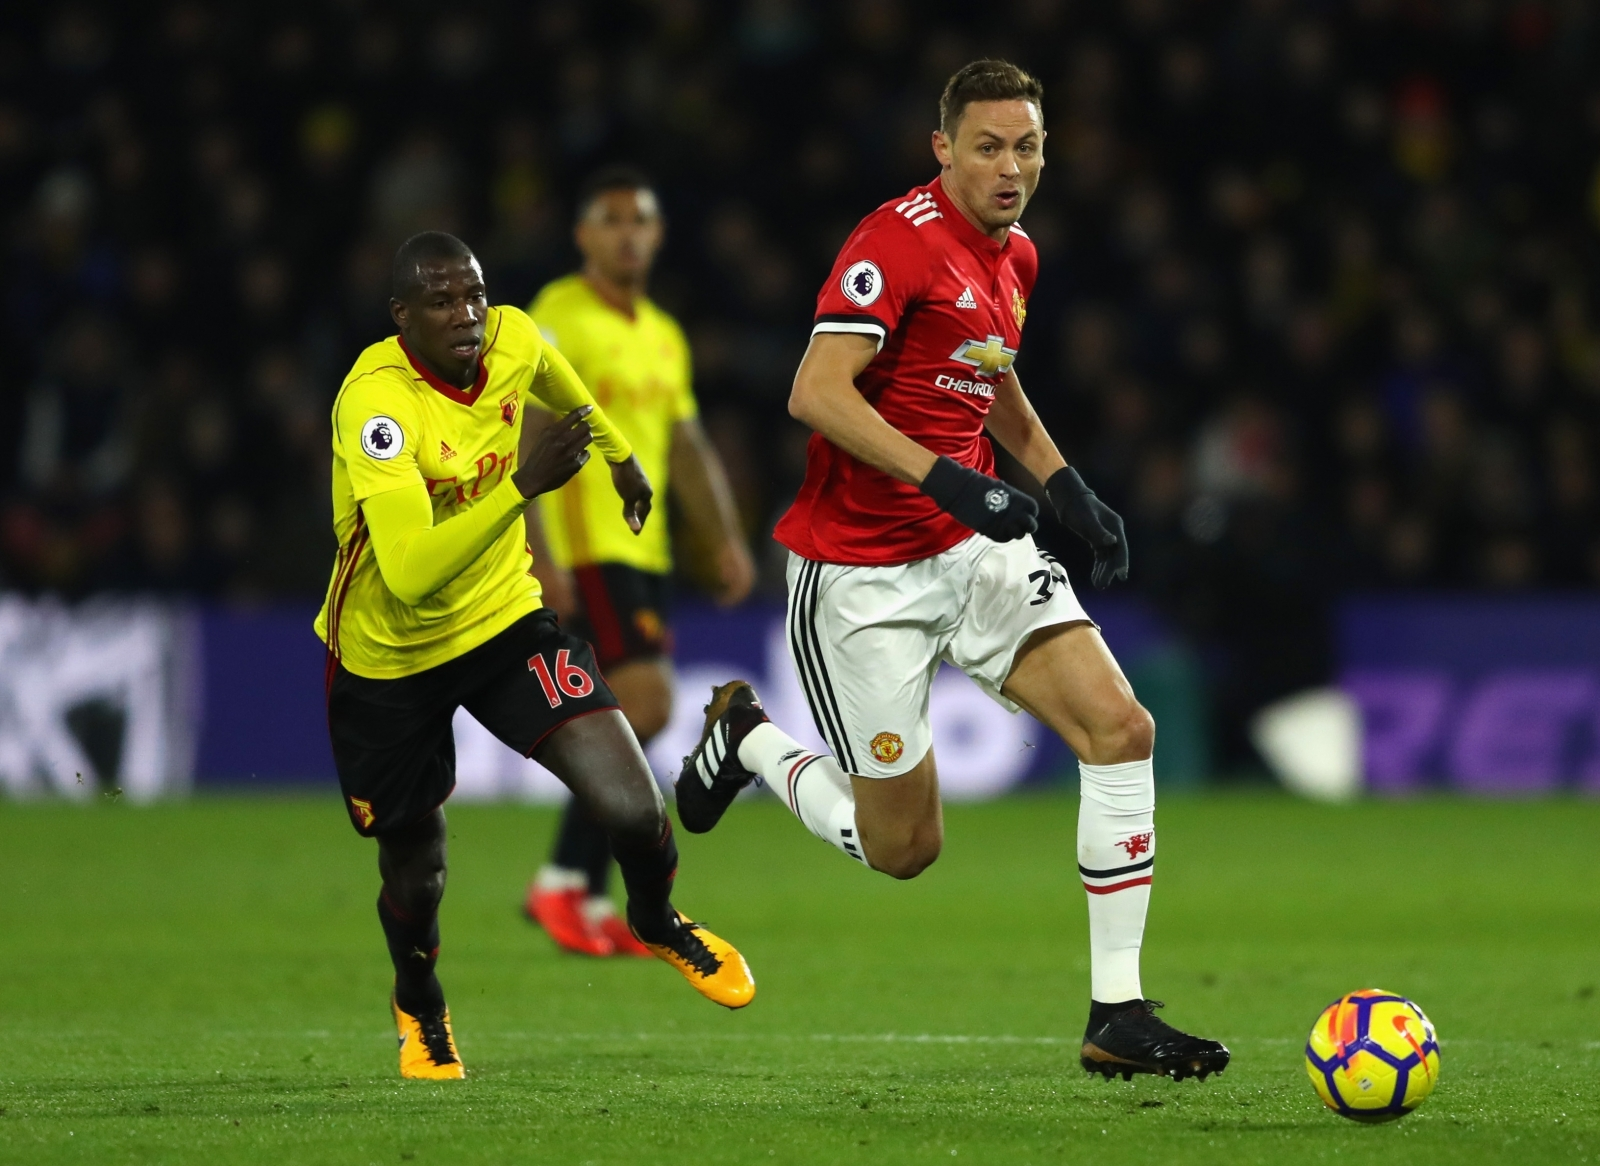 Nemanja Matic is doubtful for Manchester United's clash with Arsenal